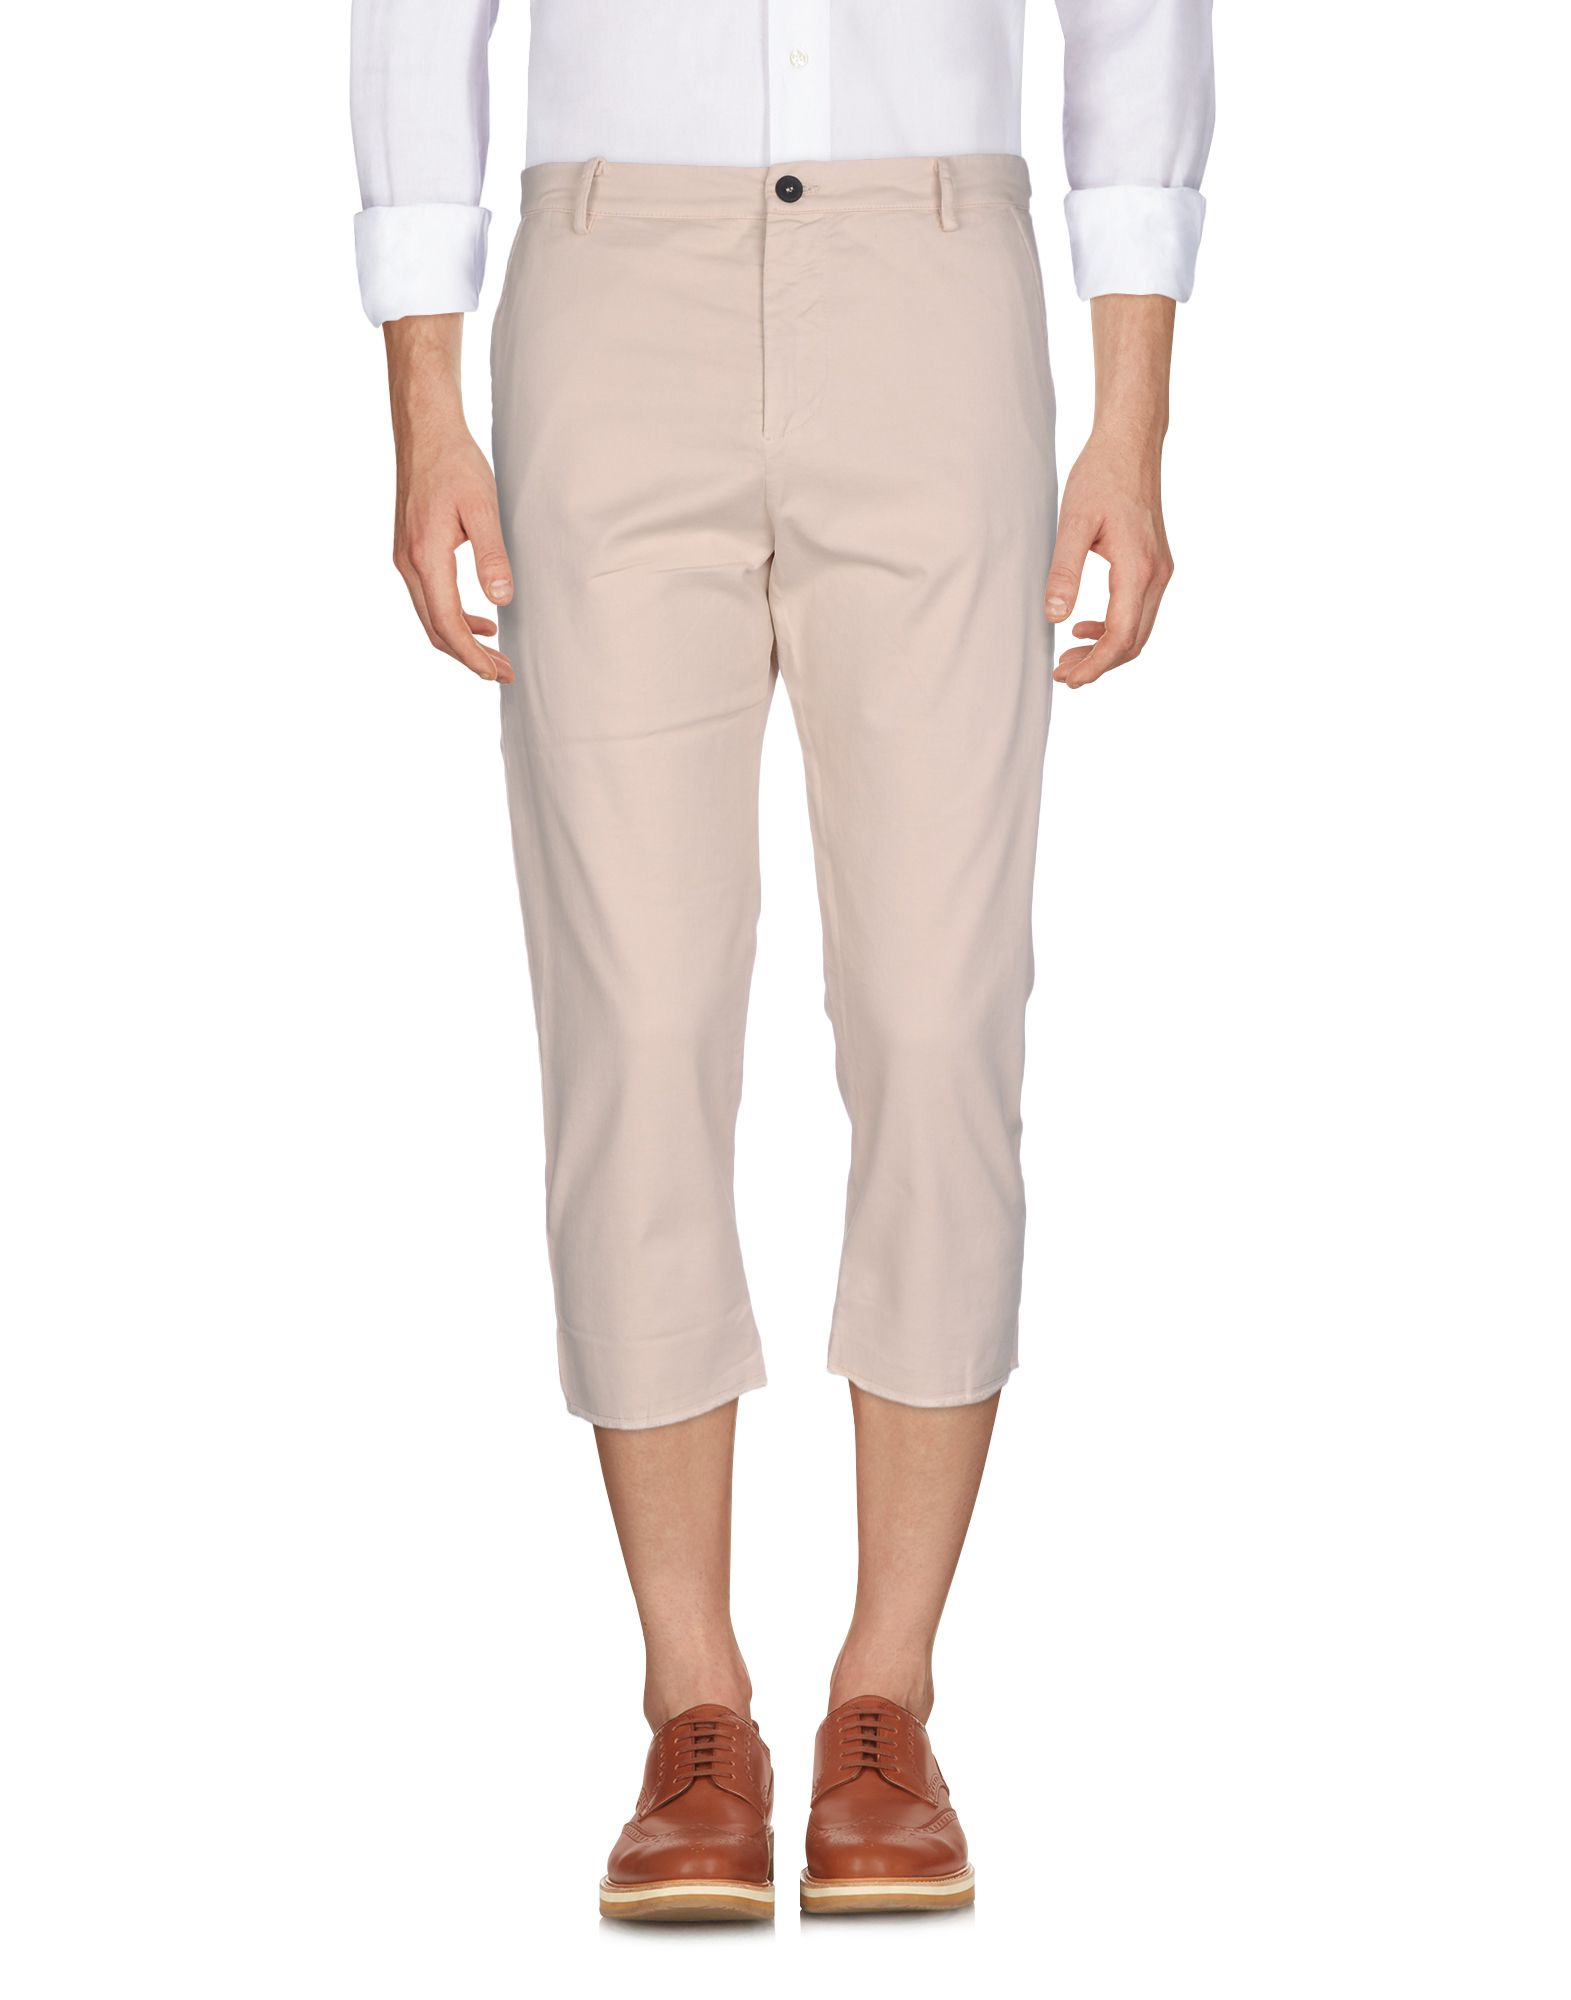 Chinos C.Y.H. Clap Your Hand Hand Your Uomo - 13101712IM b53fab